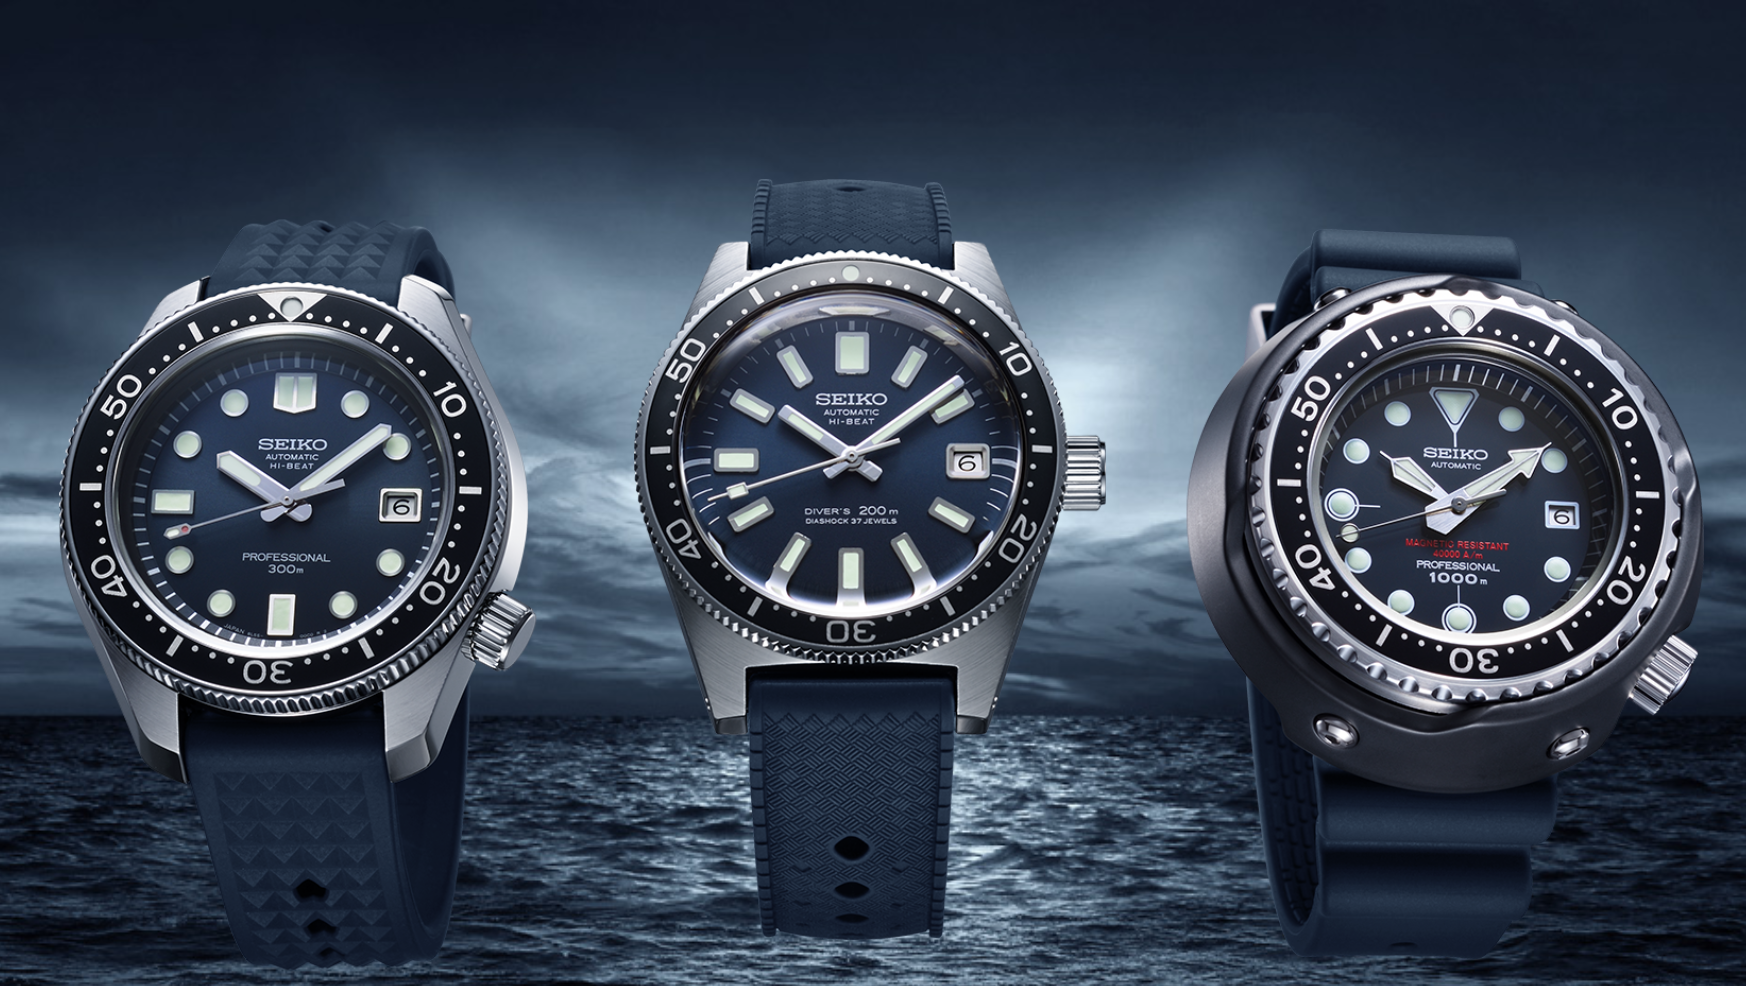 Seiko 2020 watch releases